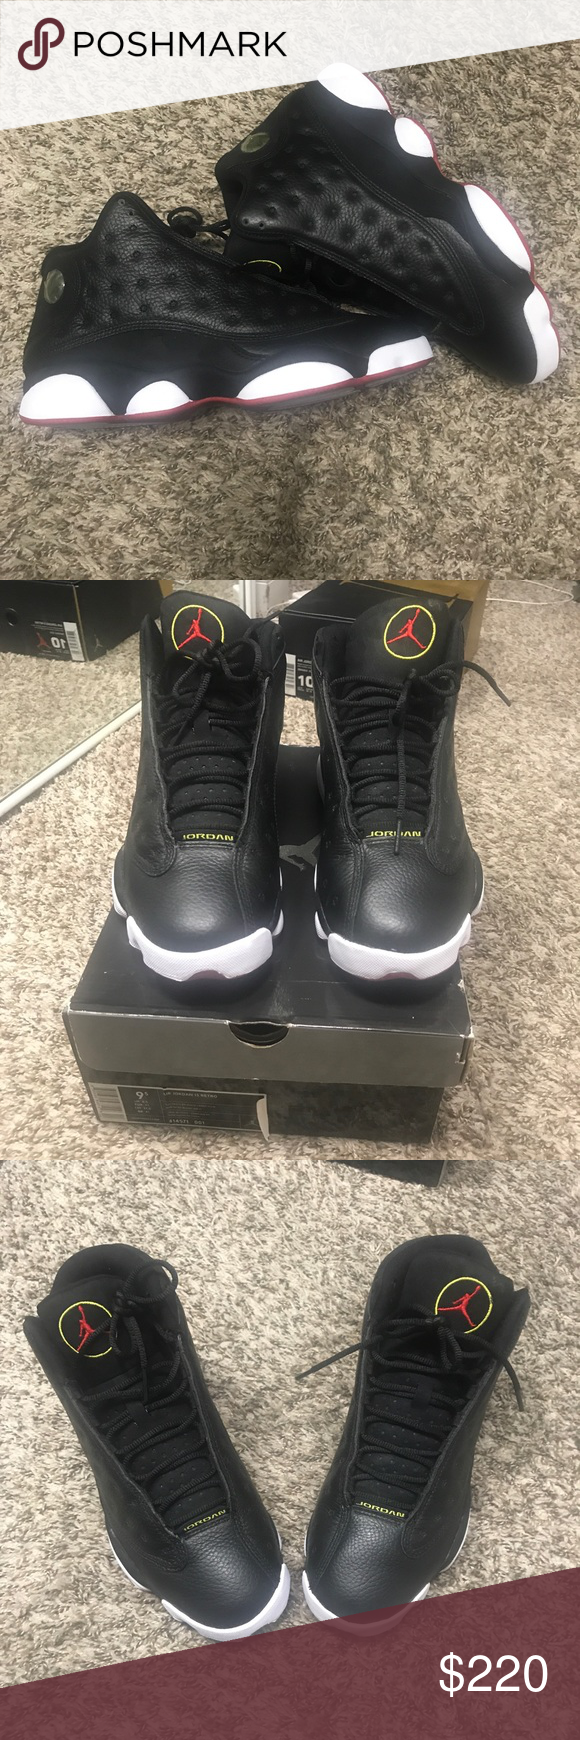 premium selection 72321 25364 Air Jordan Retro 13 playoffs Rolling authentic Air Jordan Retro 13 in men s sz  9.5. Comes with og box and receipt Air Jordan Shoes Sneakers